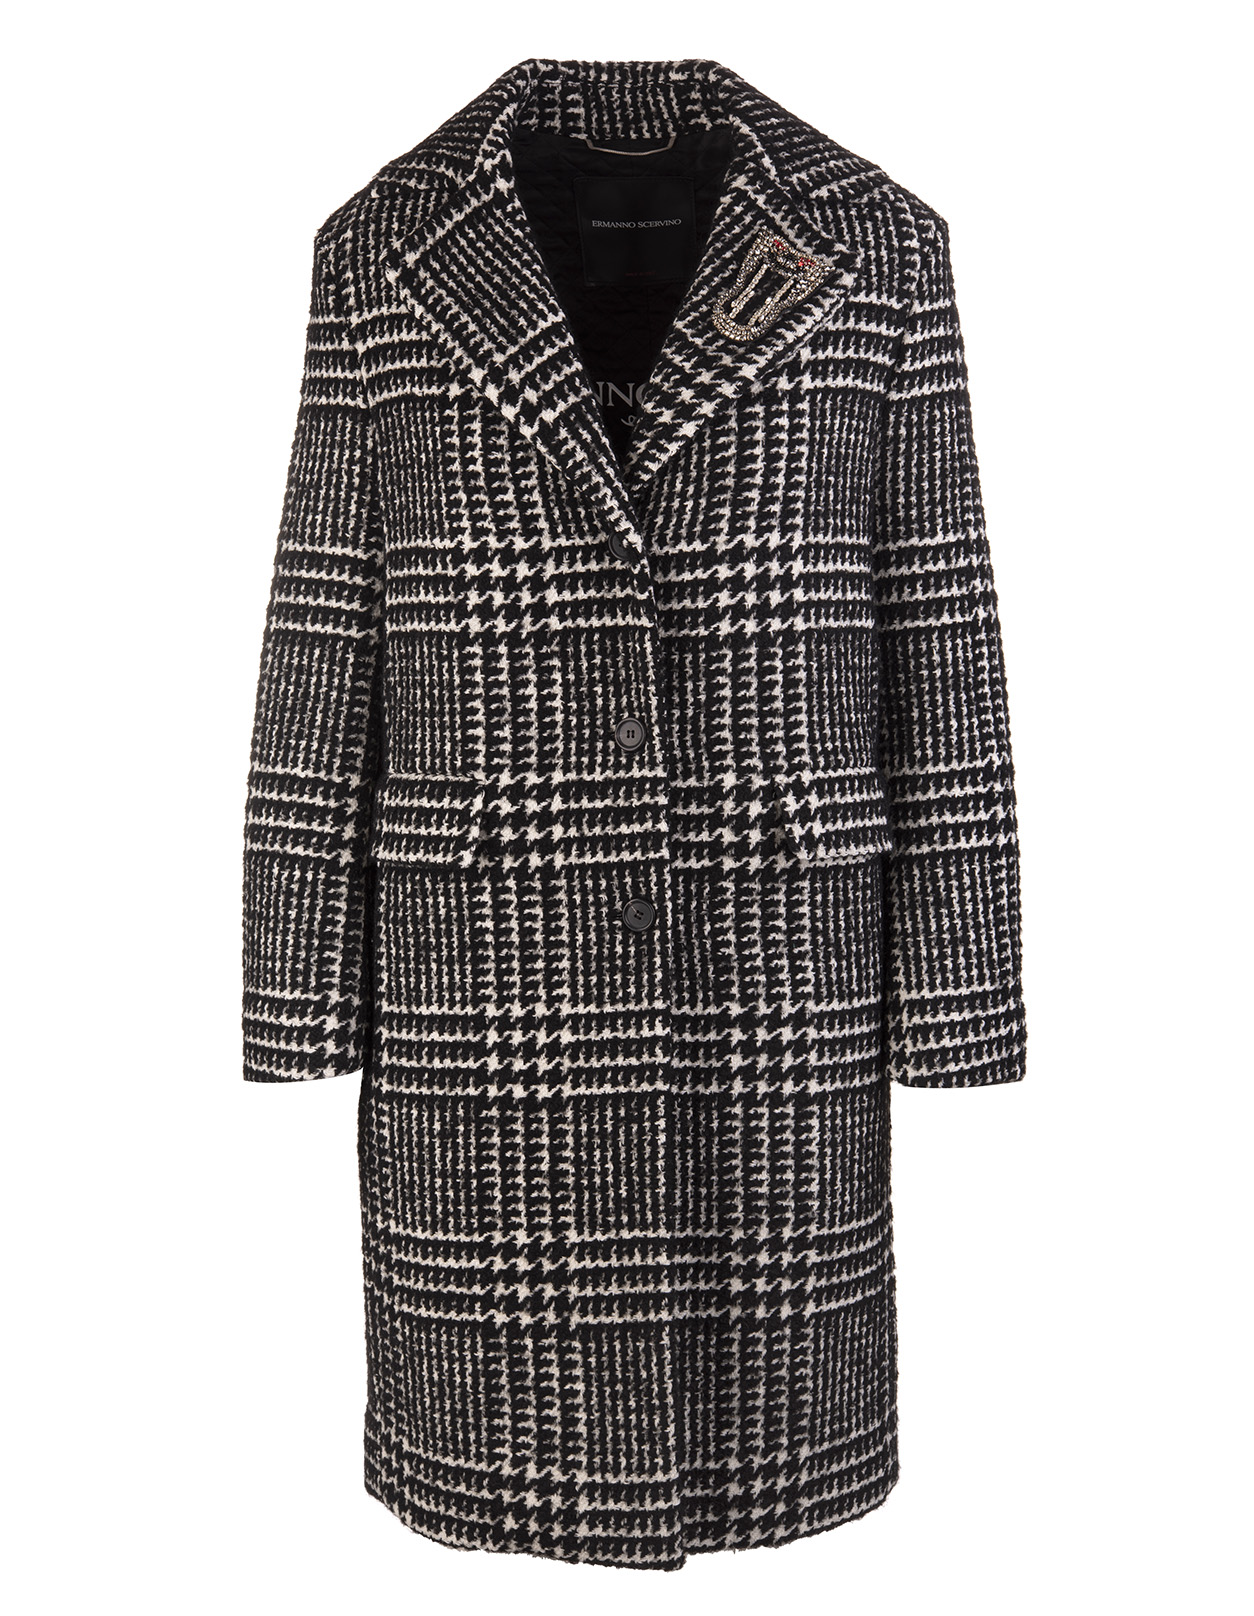 low priced 1e5a5 dd21a Grey Prince of Wales Wool Coat